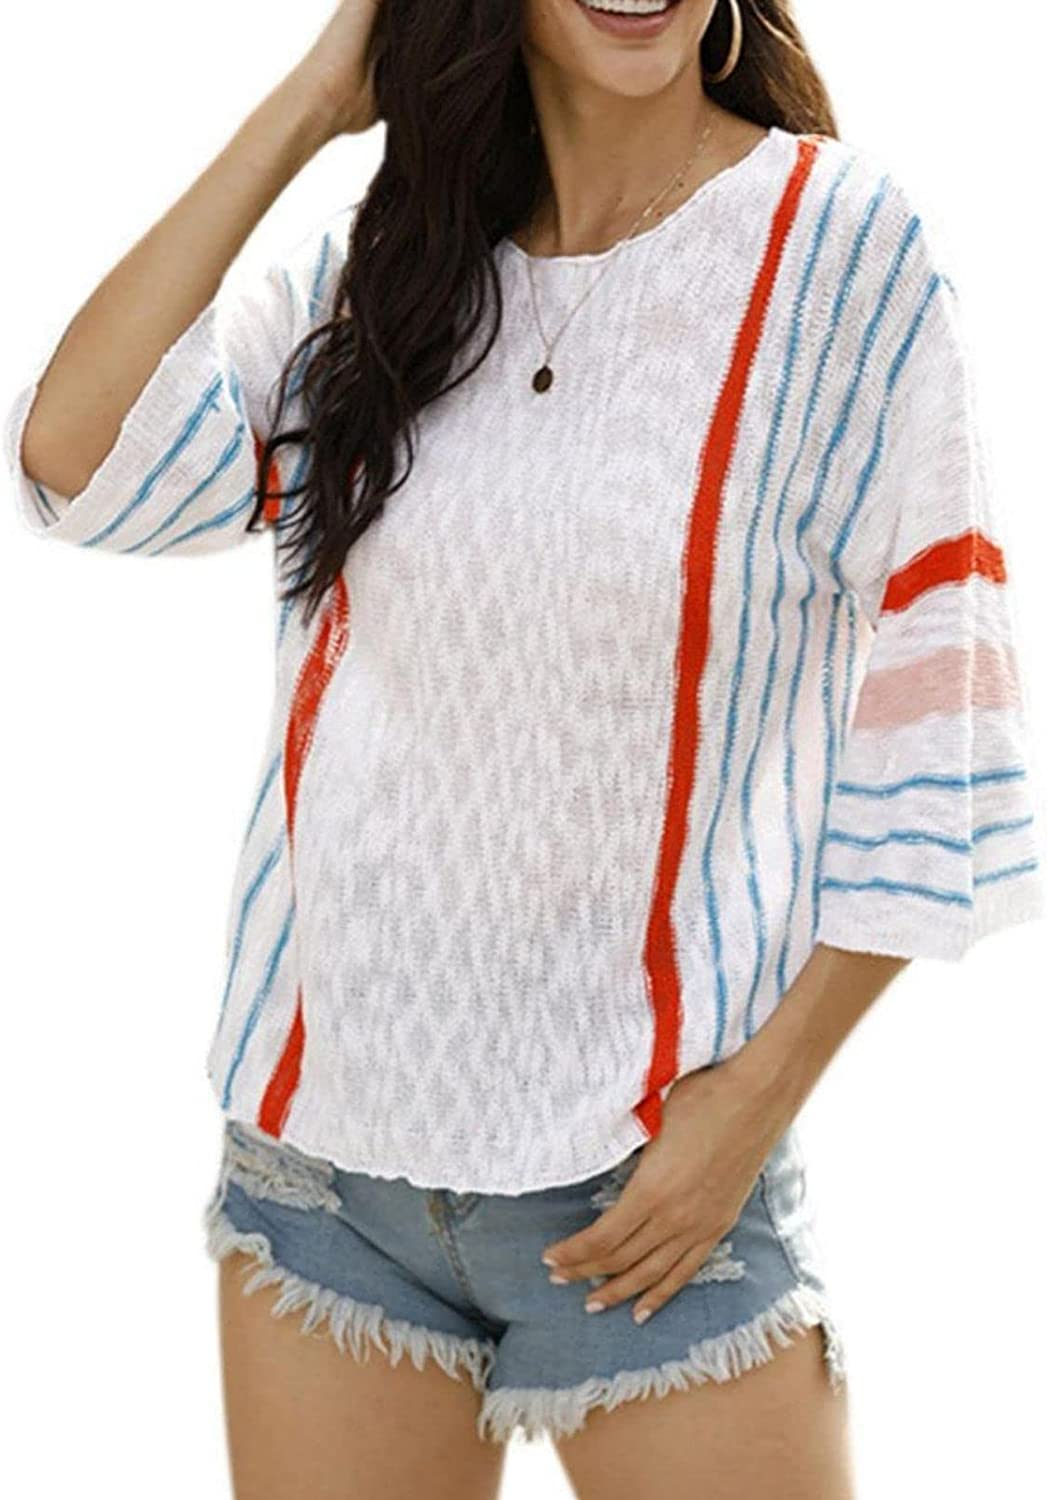 NAVORENDI Womens Casual Boho Las Vegas Mall Free shipping anywhere in the nation Sweater Block Bell Striped Color Sl